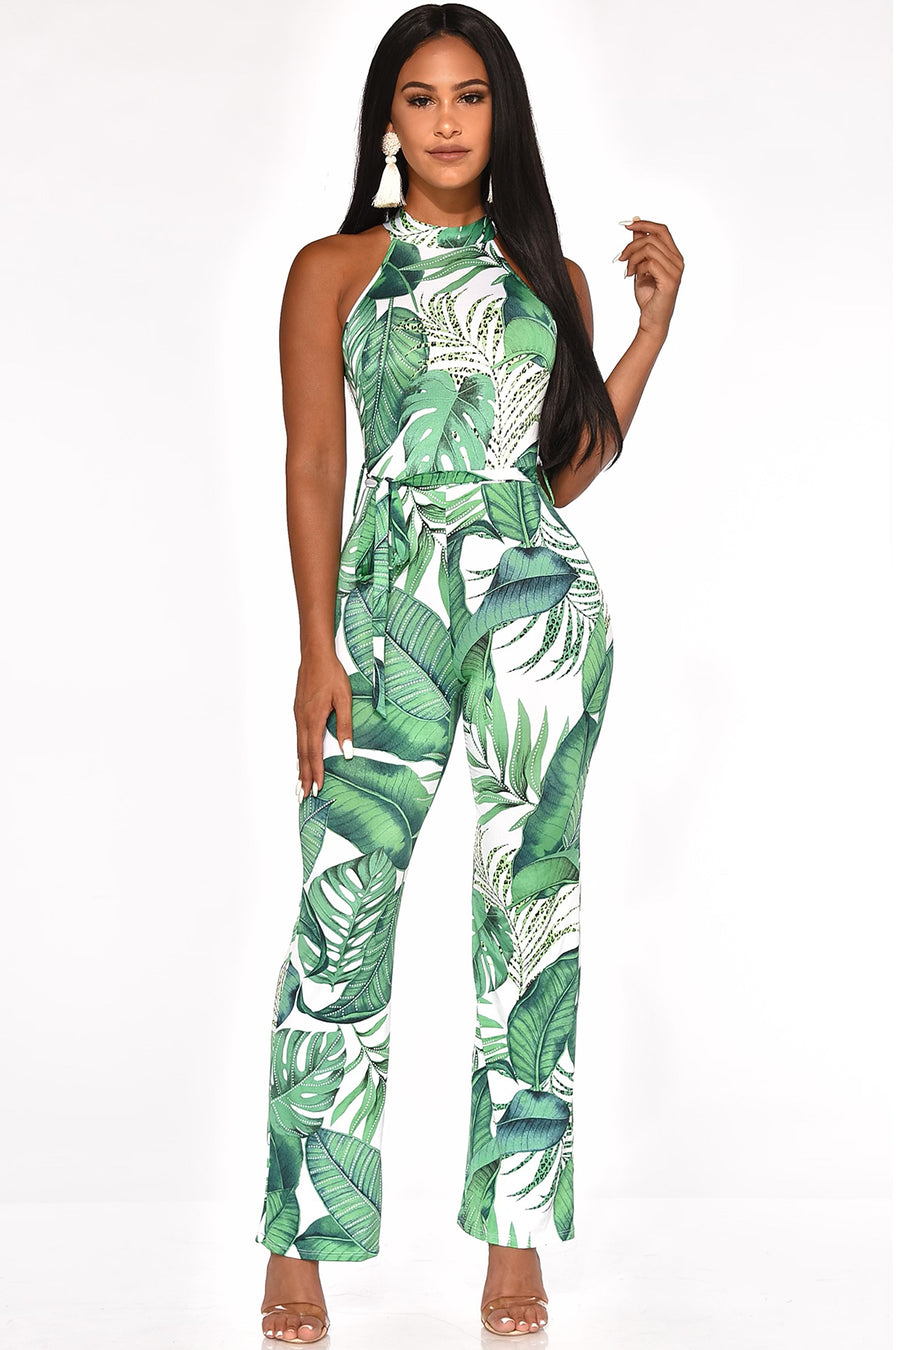 TRAVELIN IN THE TROPICS JUMPSUIT